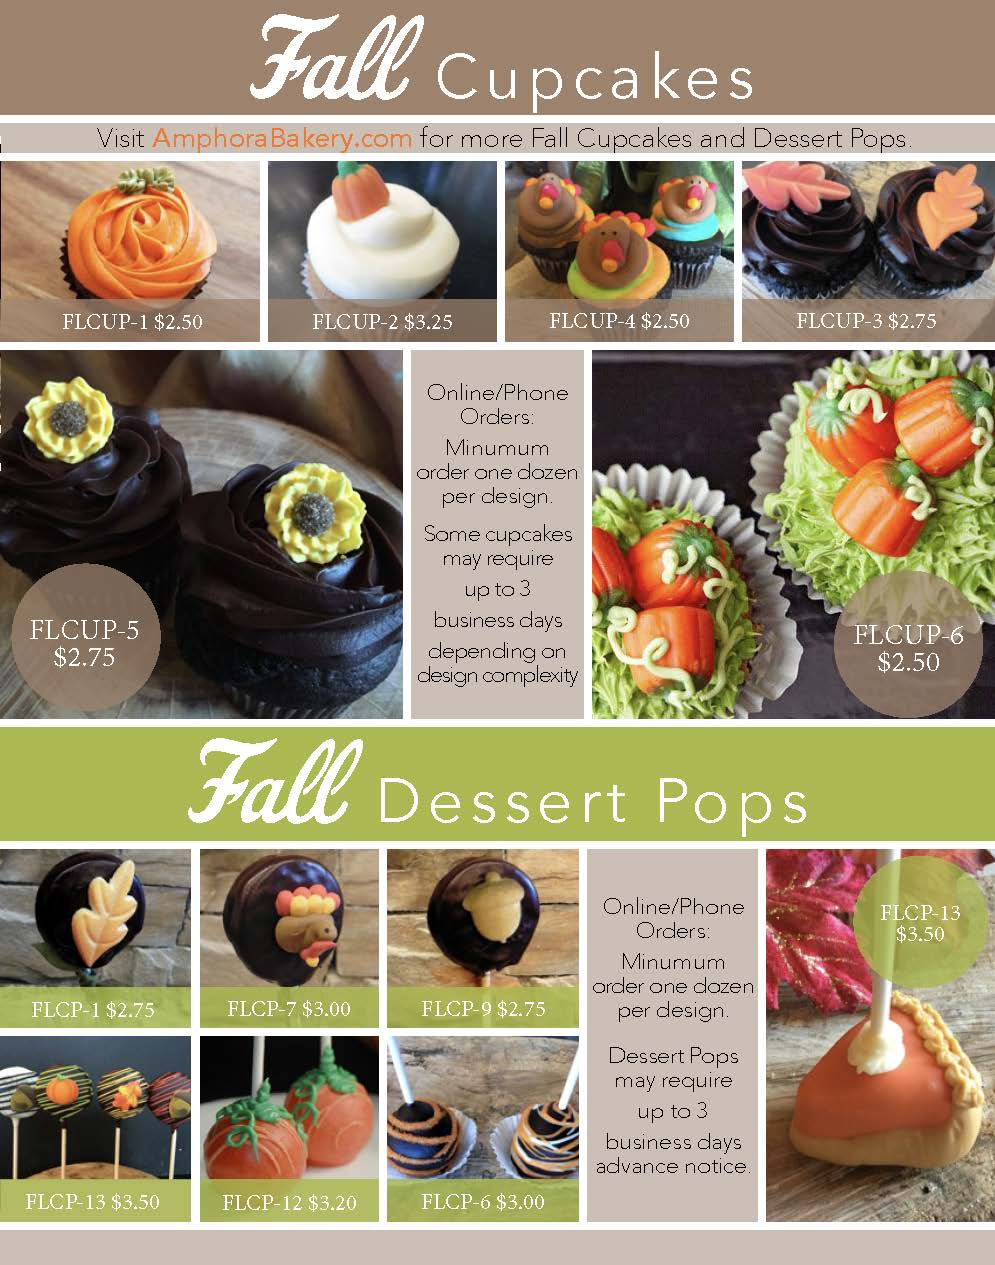 Fall Sweets and Treats 2017_Updated_FINAL_Page_3.jpg